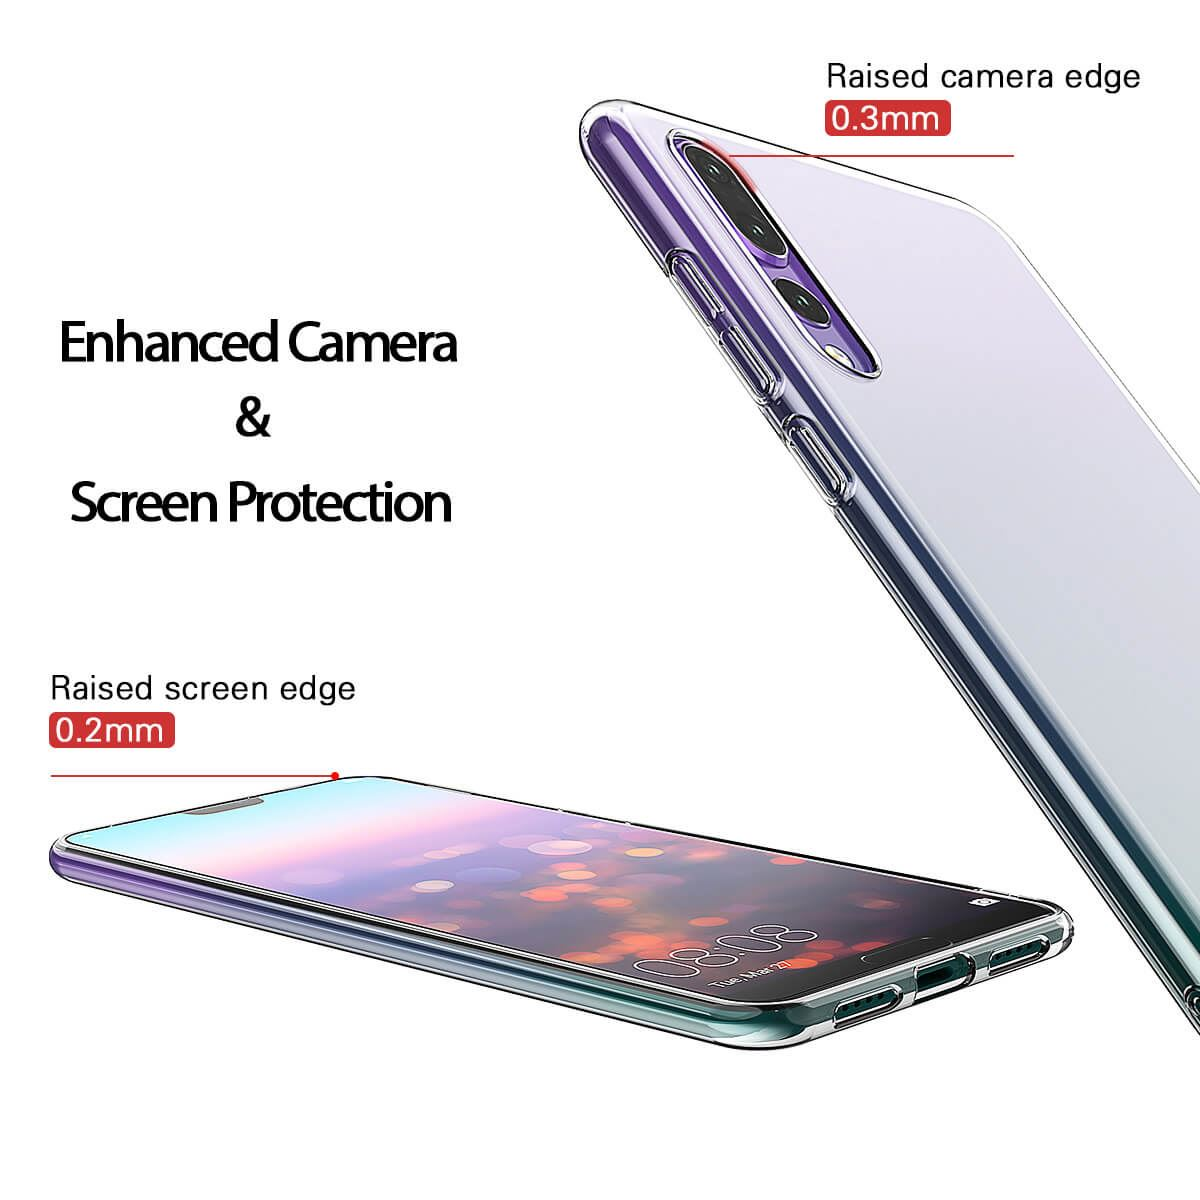 Shockproof-Silicone-Protective-Clear-Gel-Cover-Case-For-Huawei-P20-Pro-P-Smart thumbnail 38